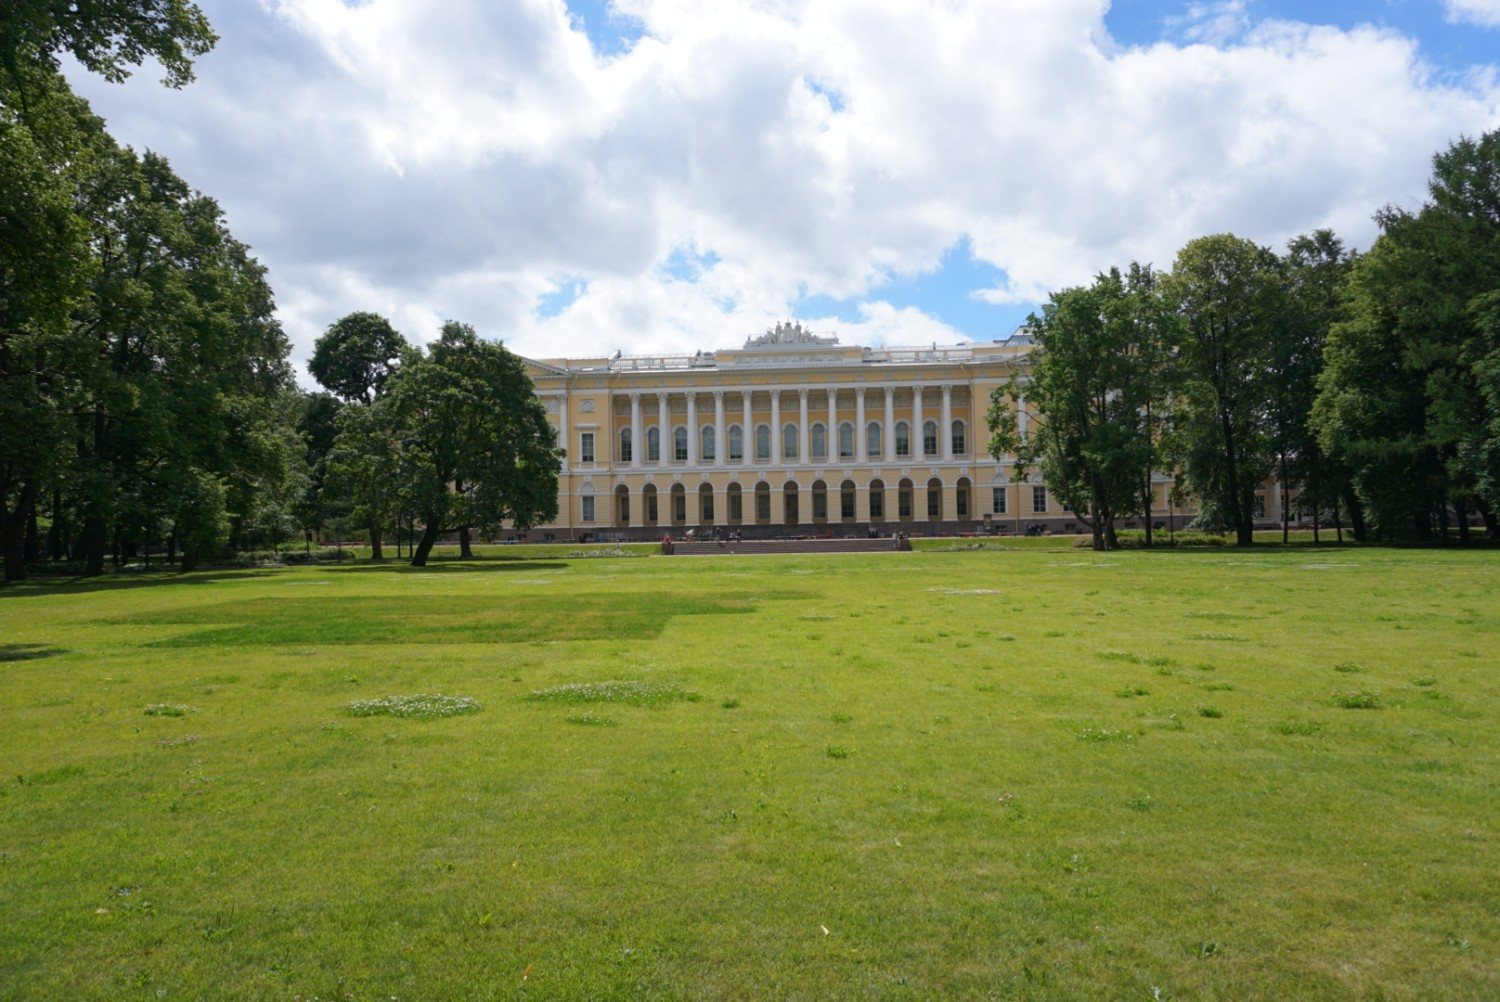 One of the many palaces you can visit in St. Petersburg, Russia. boldlygotravel.com